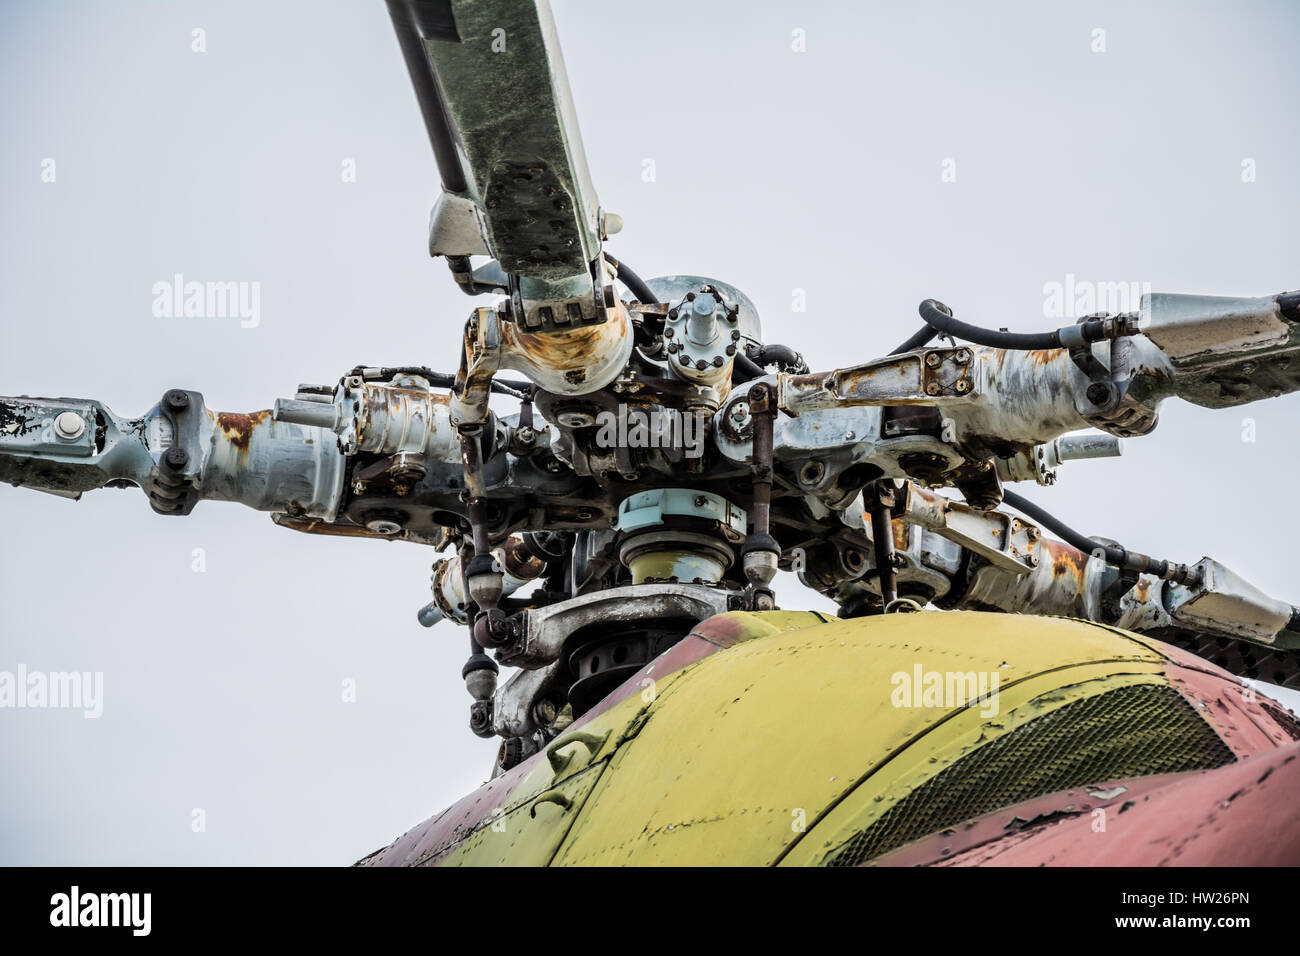 Propeller of old helicopter cloudy day - Stock Image